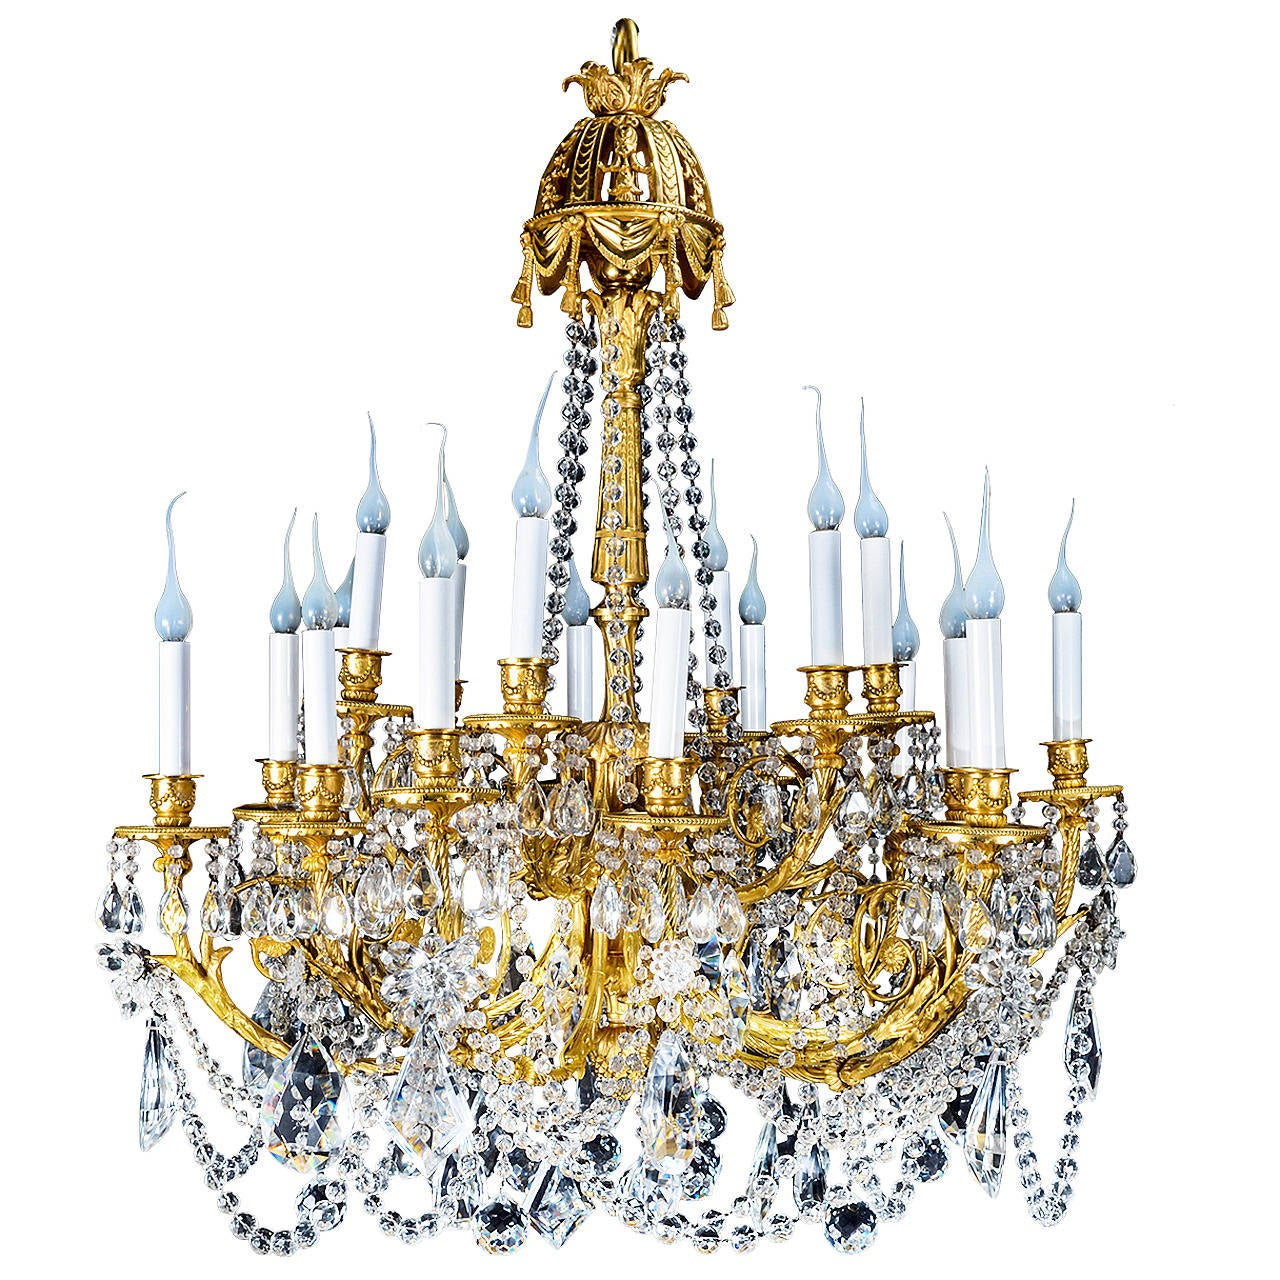 Superb Antique French Louis XVI Style Gilt Bronze and Crystal Chandelier